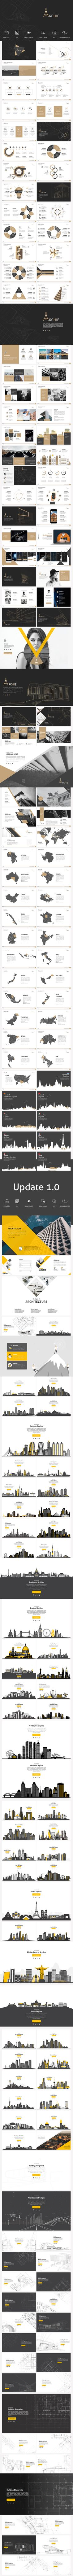 Archie - Animated Presentation Template - Business PowerPoint Templates